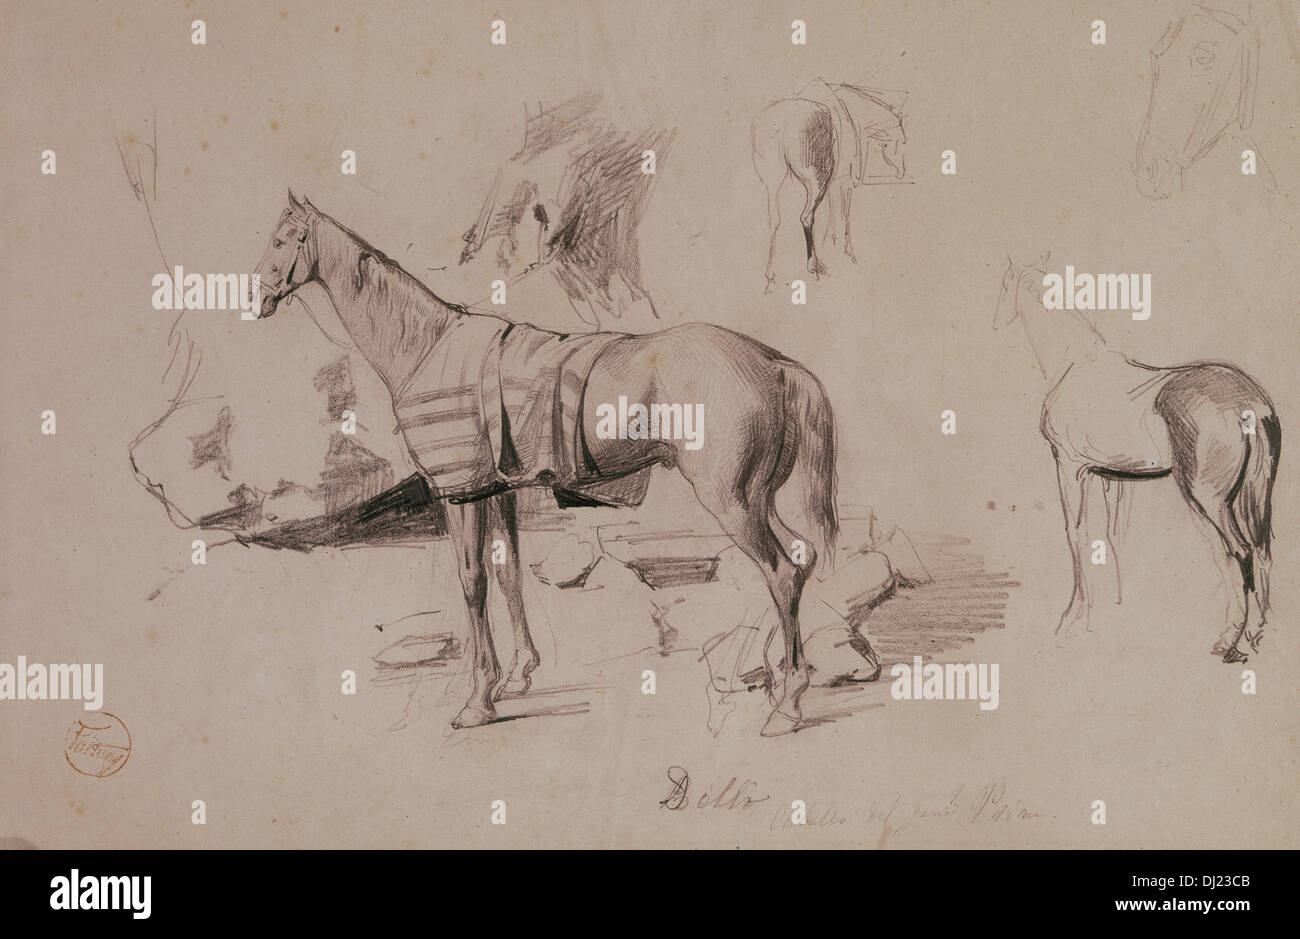 Mariano Fortuny (1838-1874). Spanish painter and printmaker. Dello, horse of General Prim. Drawing in Africa, 1860. - Stock Image